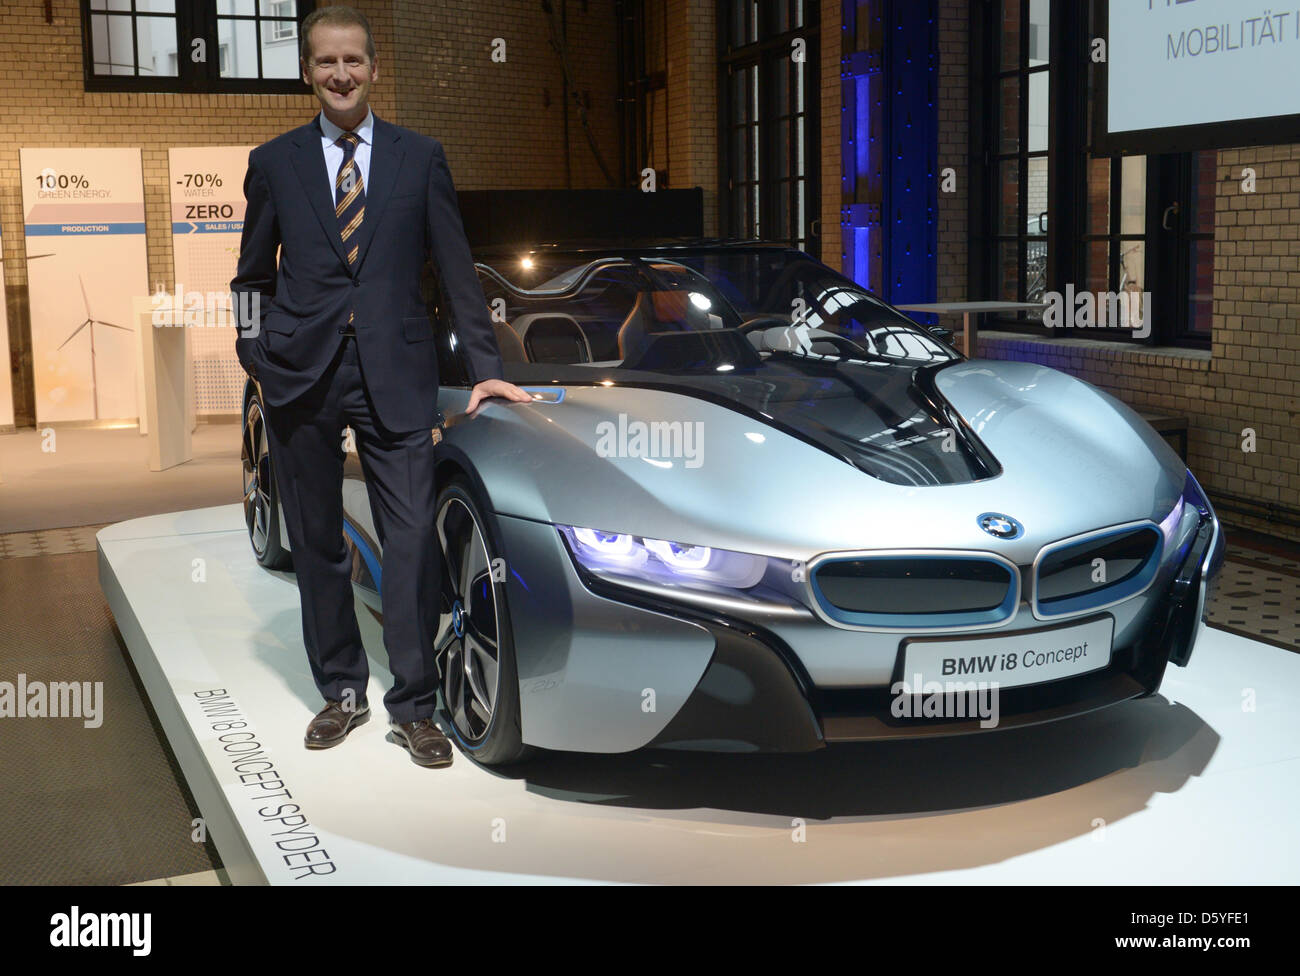 Development Director Herbert Diess Stands Next To A Bmw I8 Concept